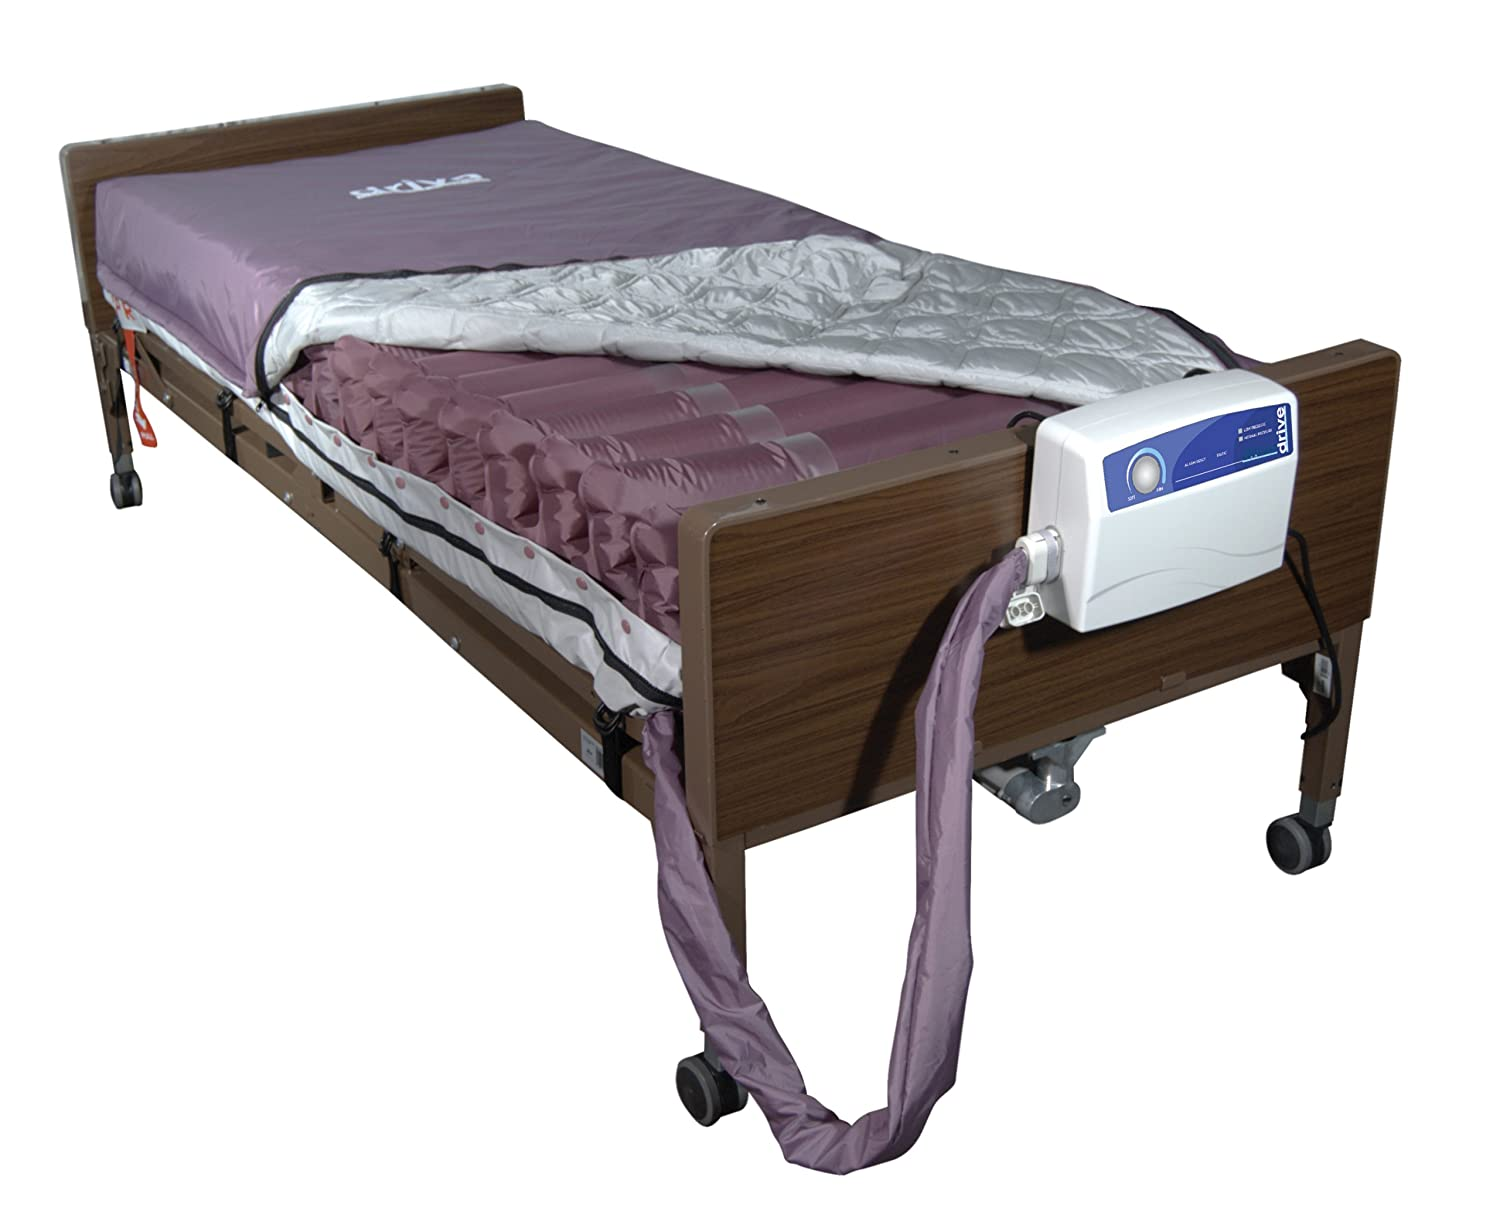 Amazon.com: Drive Medical Med Aire Low Air Loss Mattress Replacement System  with Alternating Pressure, Dark Purple, 8